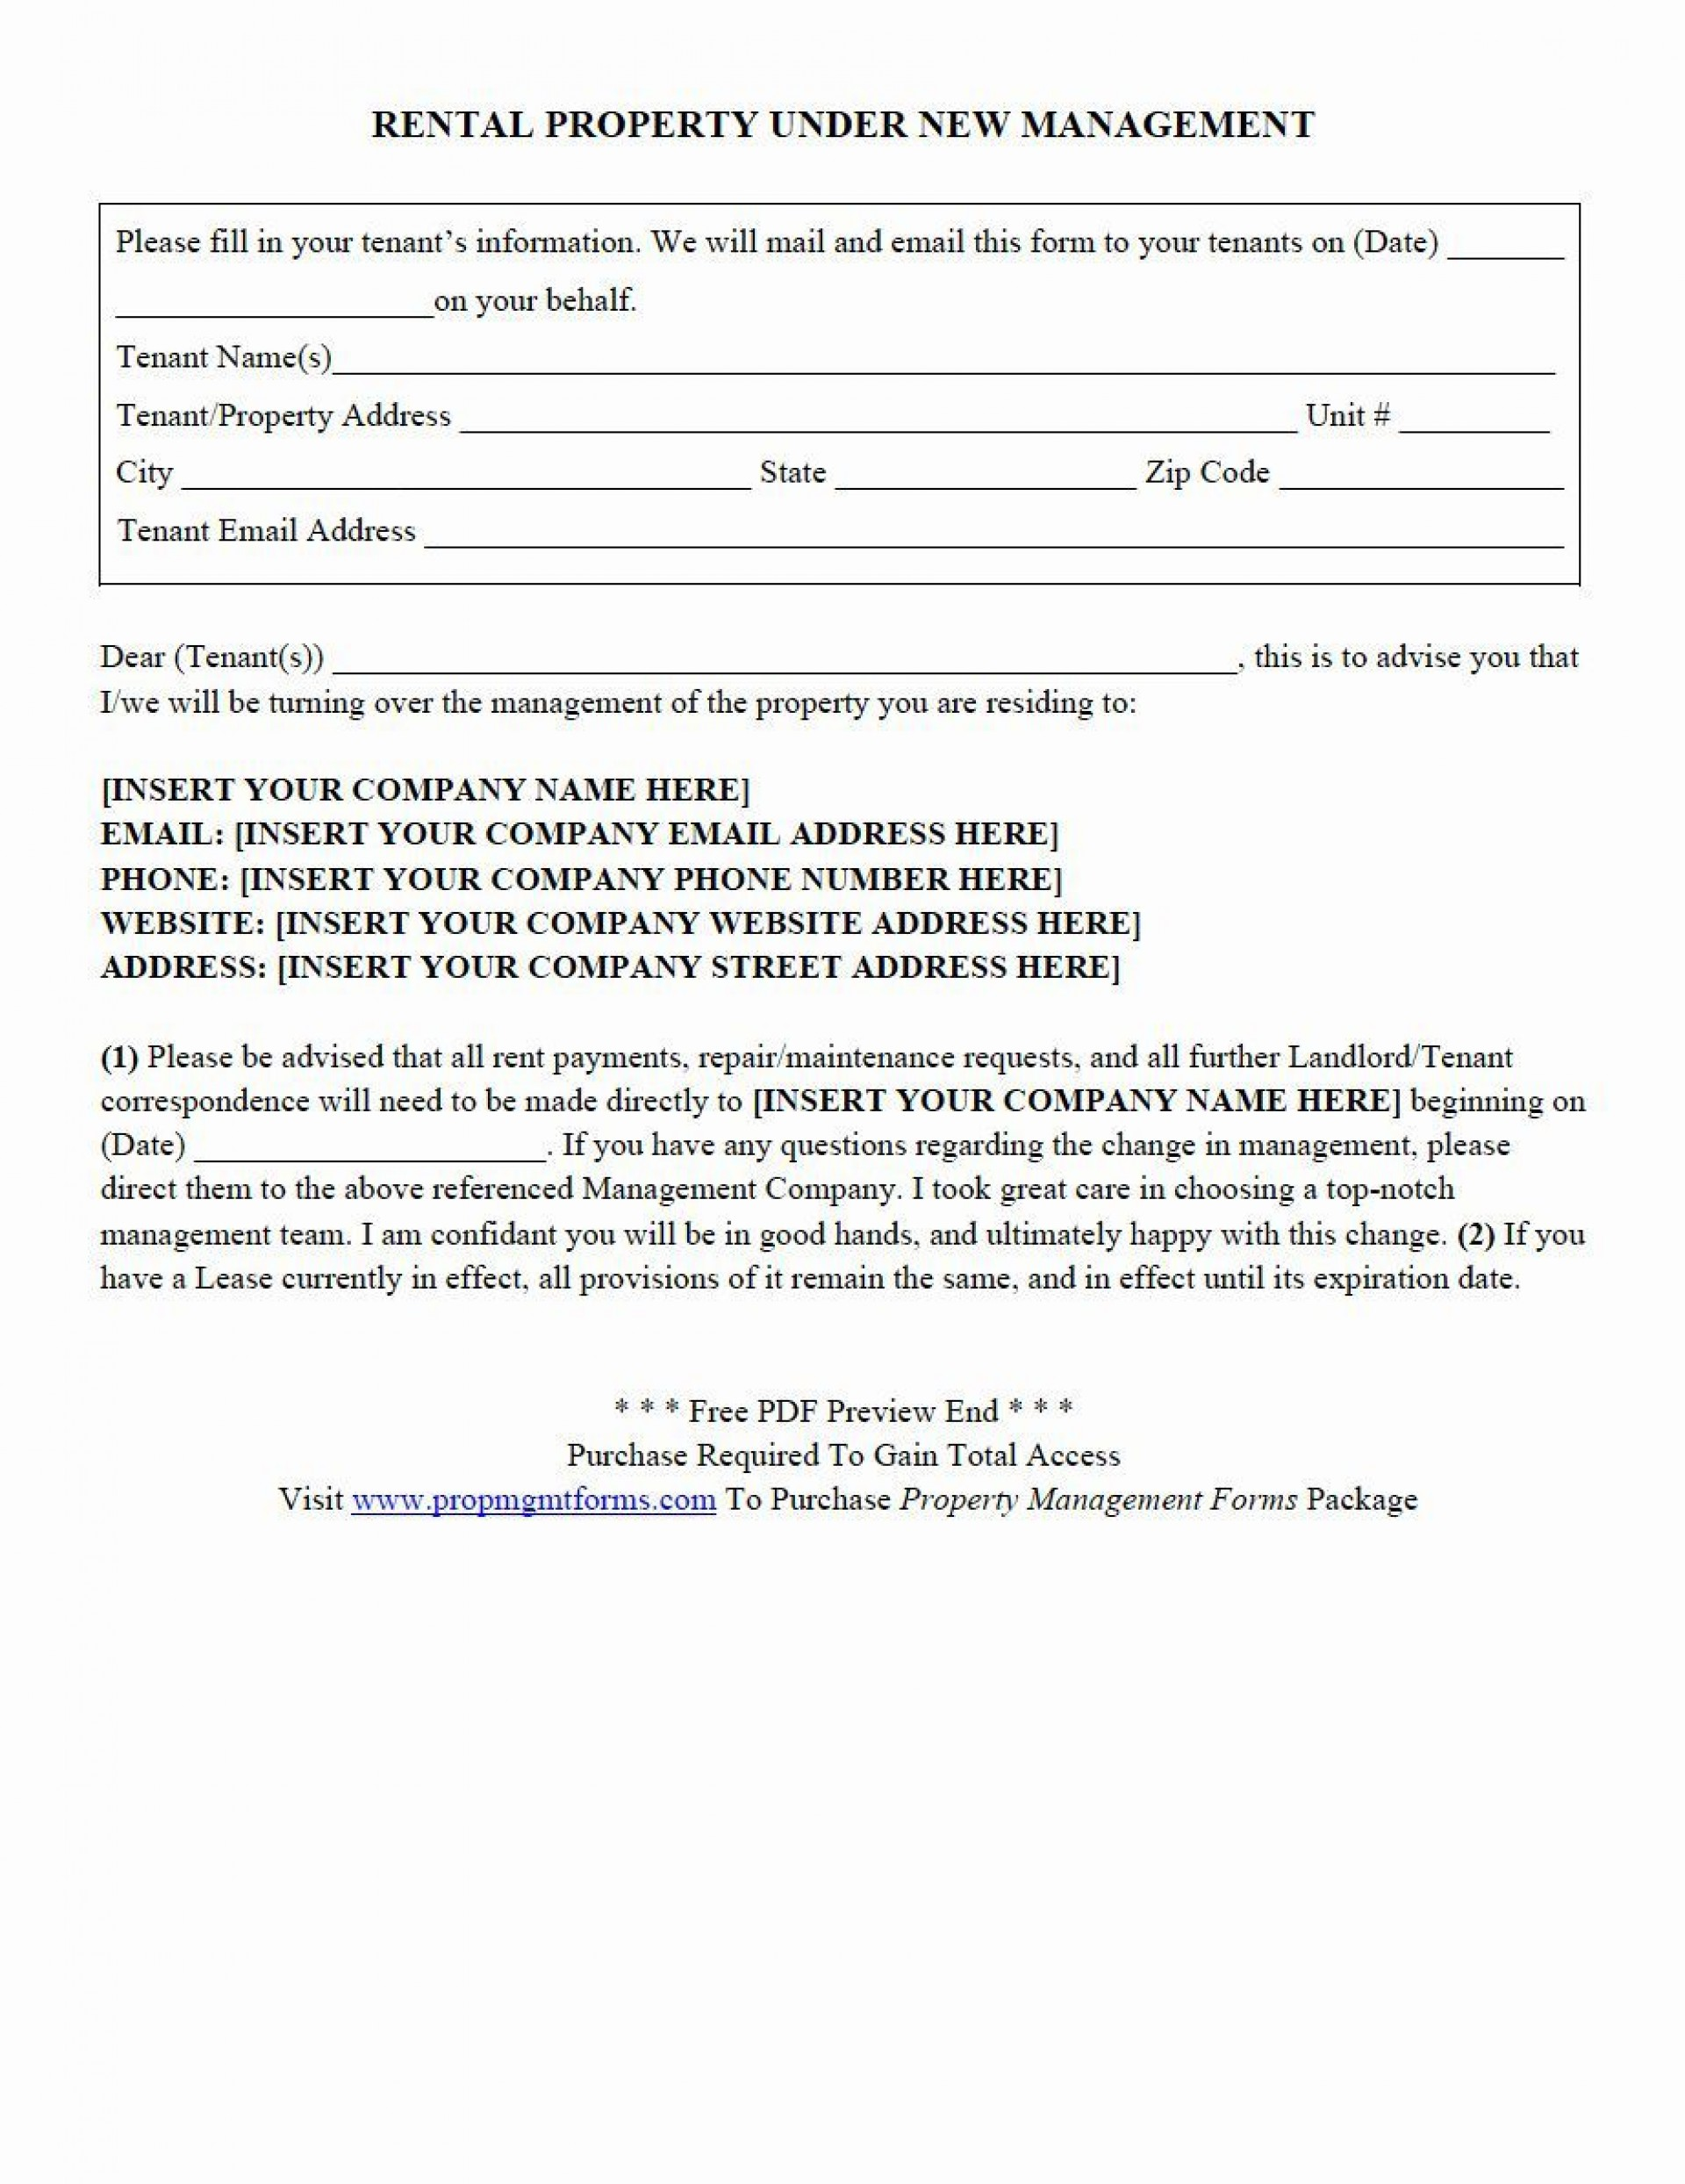 001 Magnificent Property Management Agreement Template High Definition  Templates Sample Termination Of Commercial Form1920